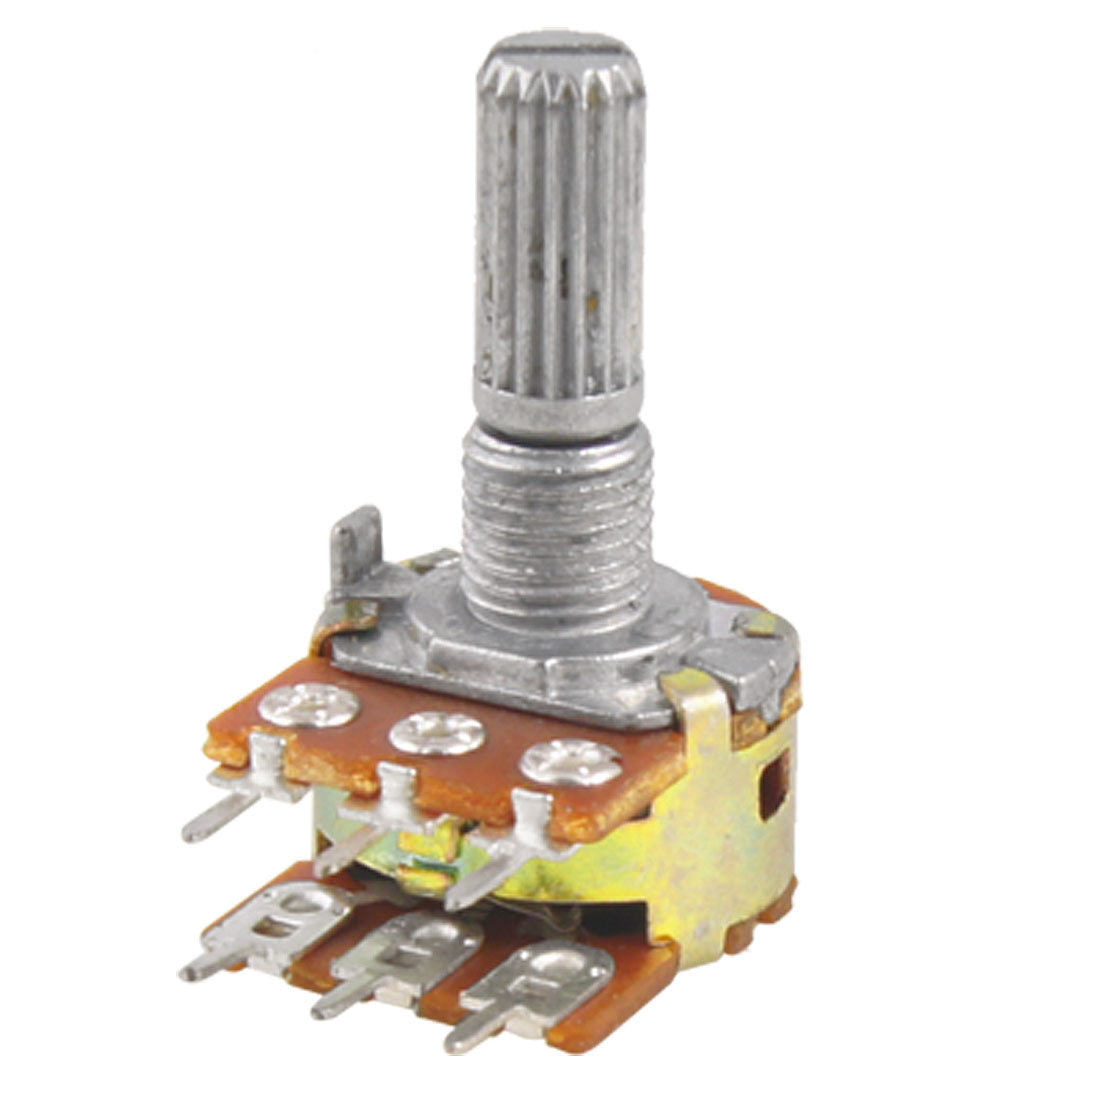 Linear Dual Split Shaft Rotary Taper Potentiometer 100K Ohm B100K